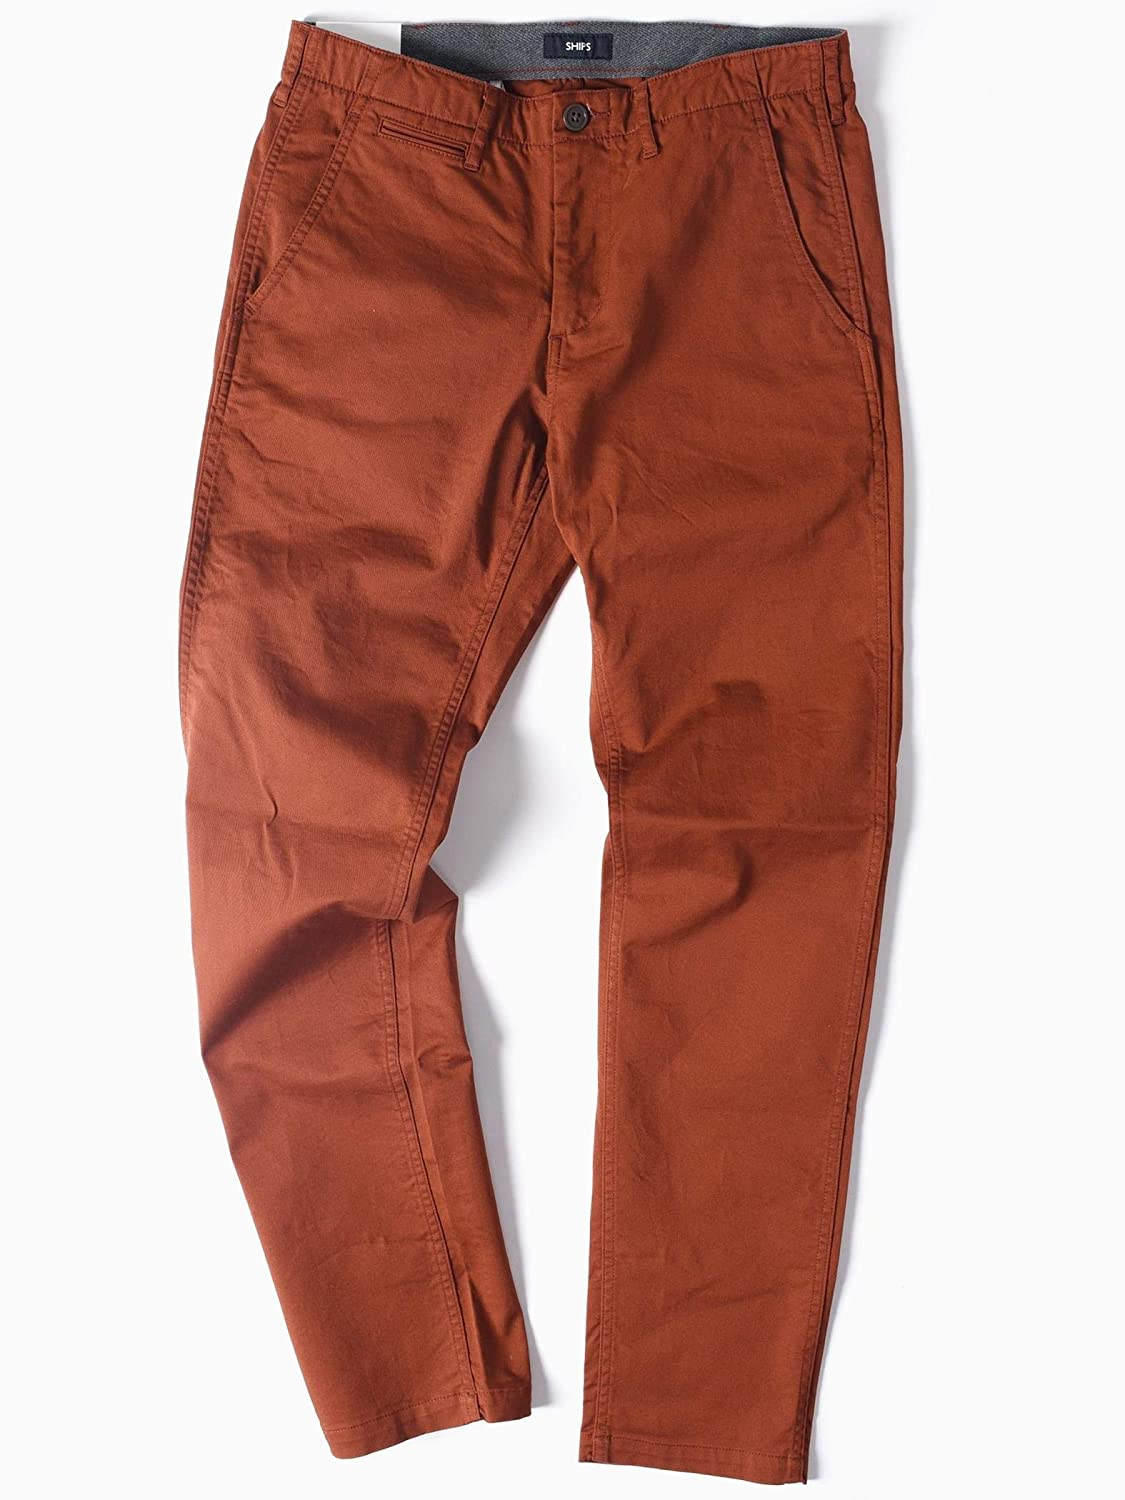 (シップス) SHIPS (2740) SC:COLOR TAPERED CHINO 113140415 B07DWJVRLP US 33-(33)|Orange2 Orange2 US 33-(33)